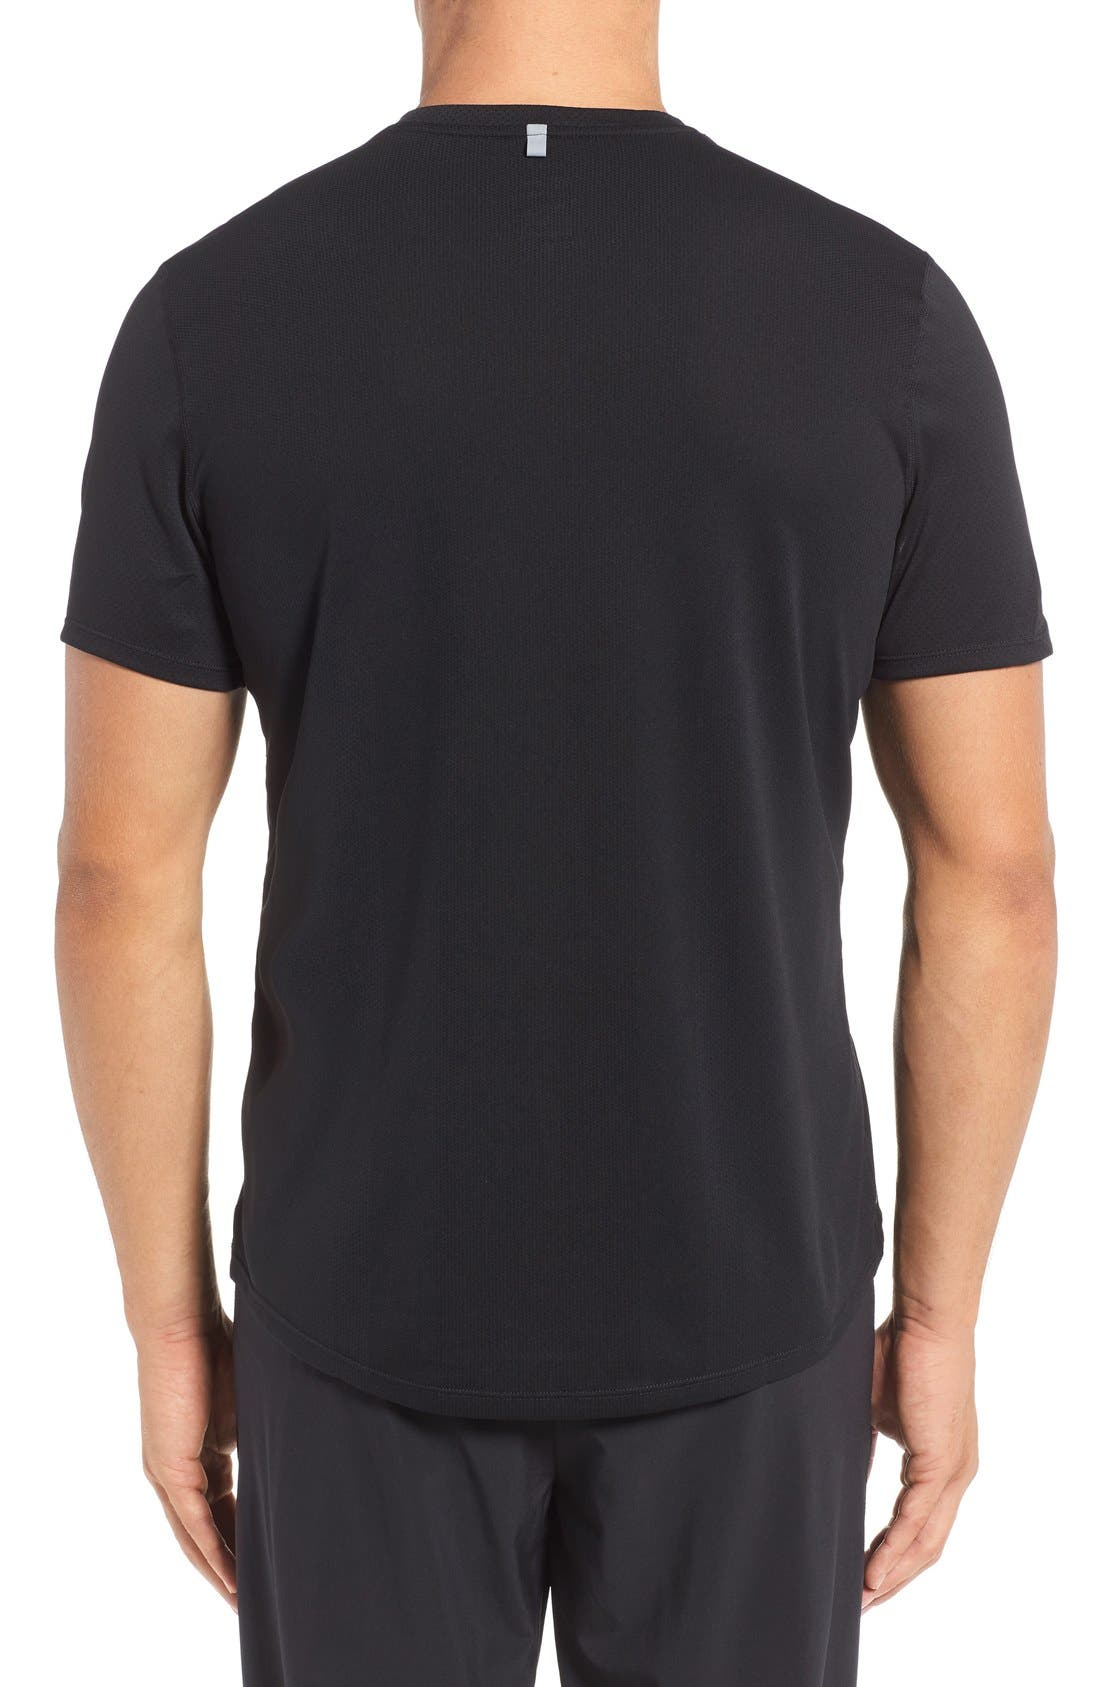 'Contour' Mesh Dri-FIT Running T-Shirt,                             Alternate thumbnail 26, color,